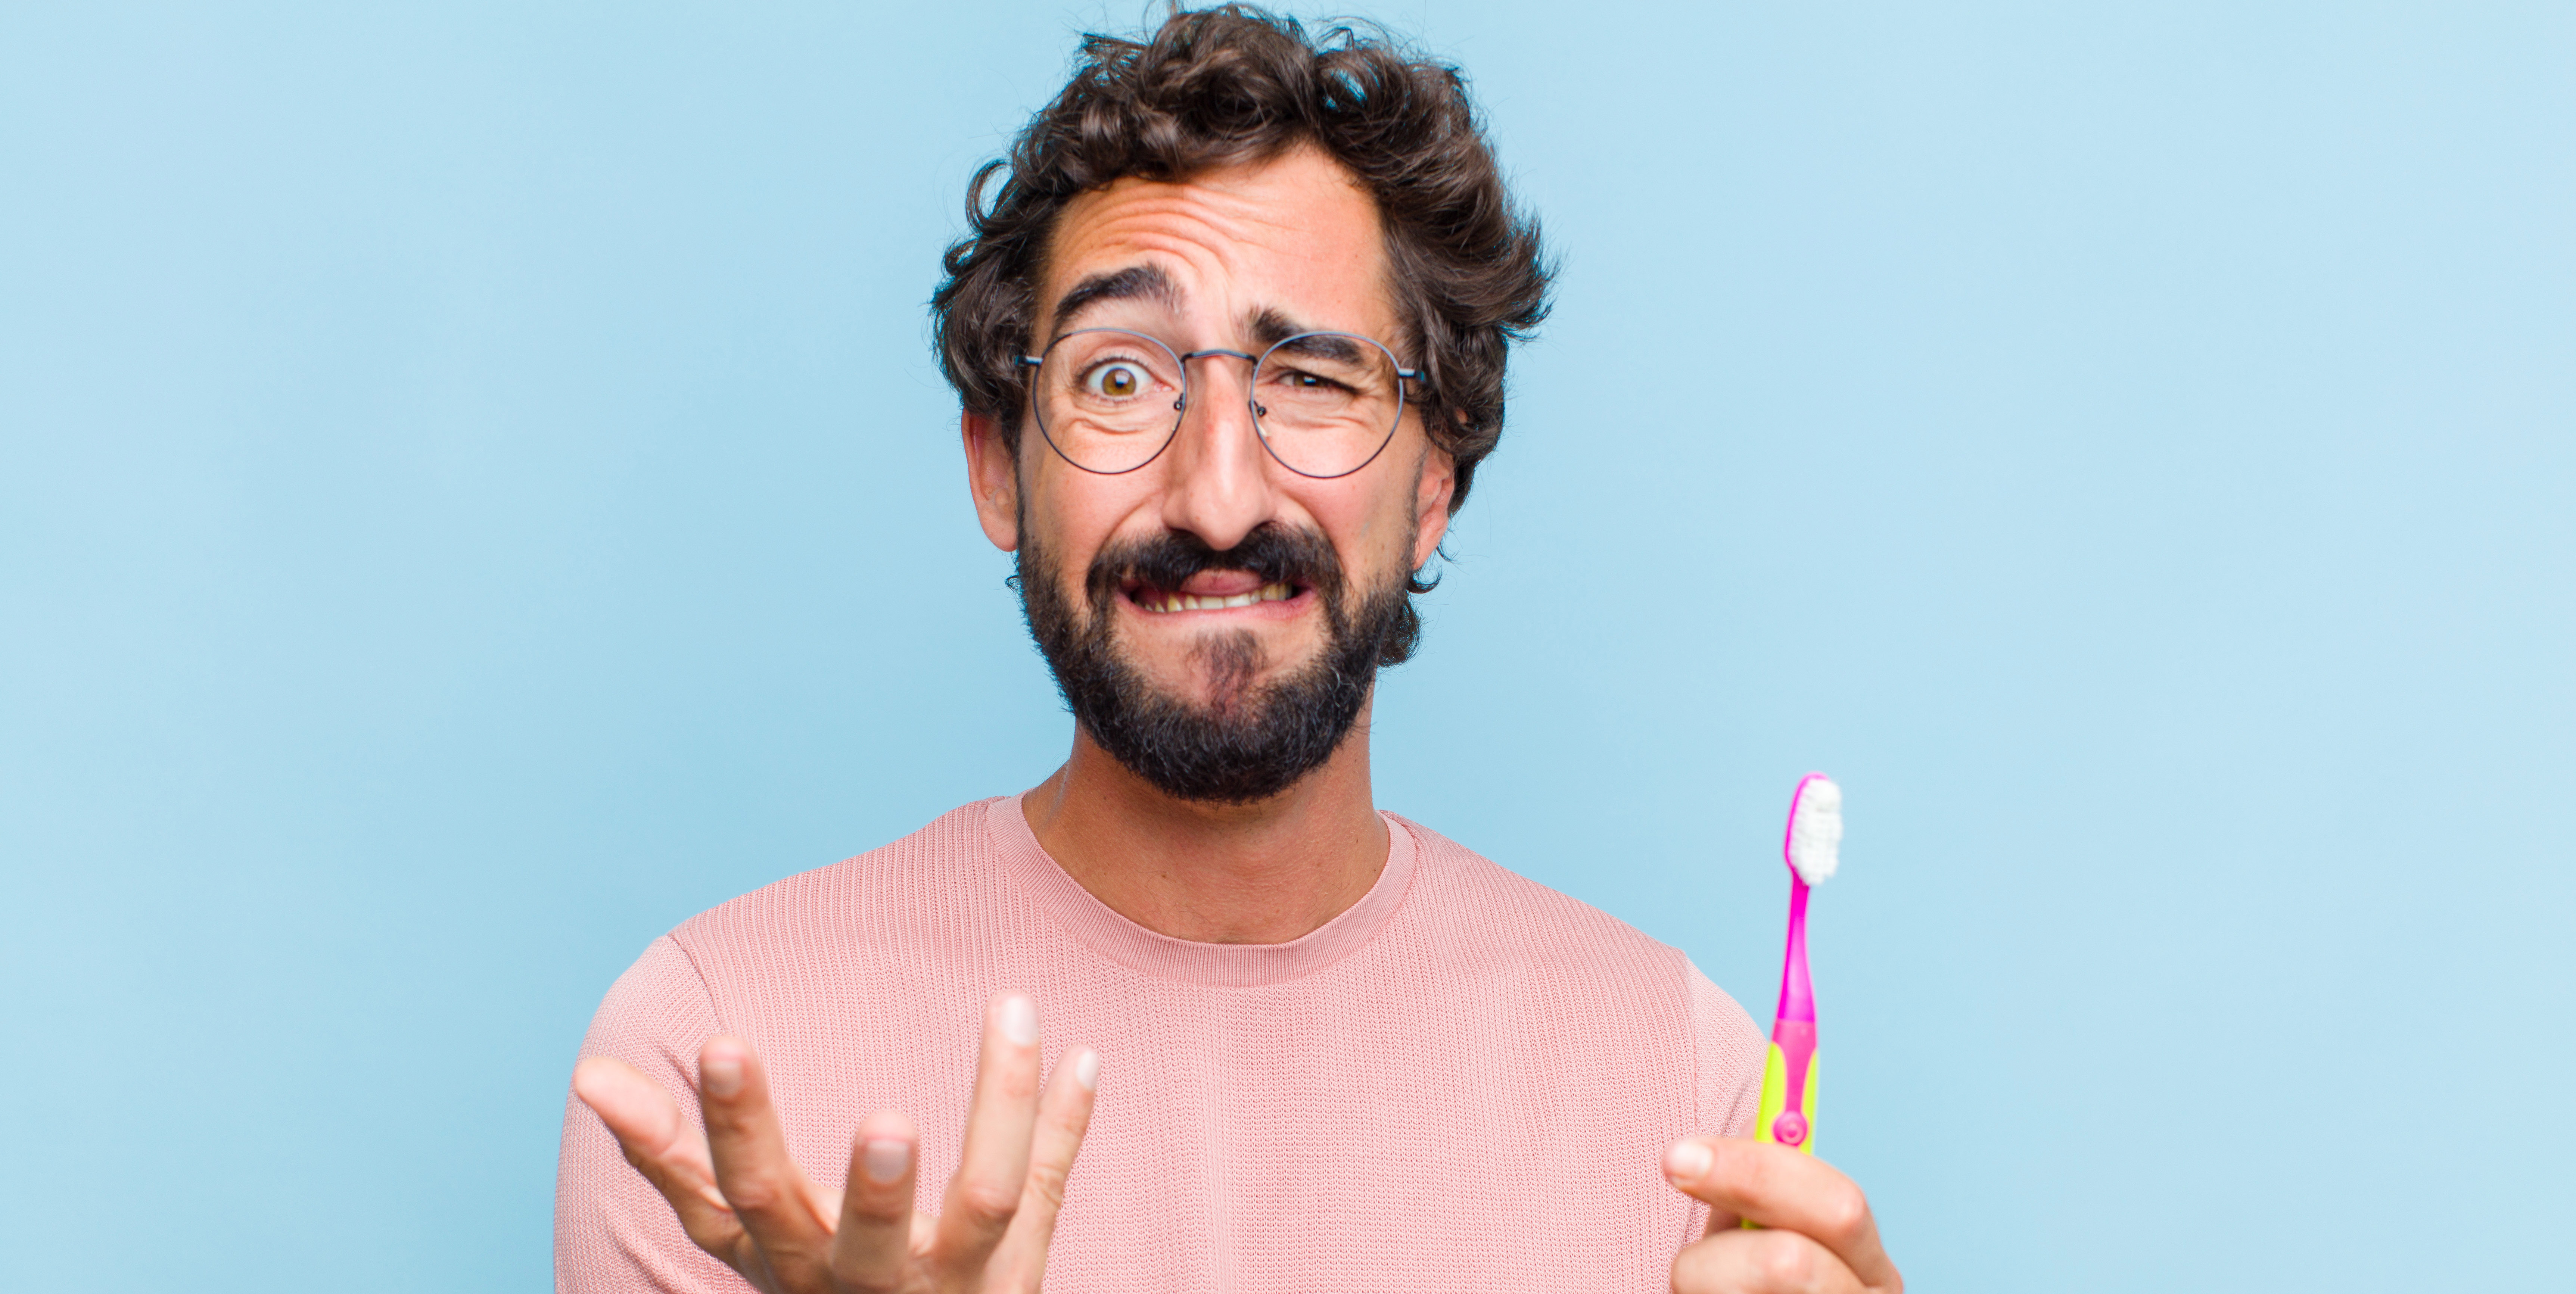 Why don't cavities heal if you keep brushing your teeth?